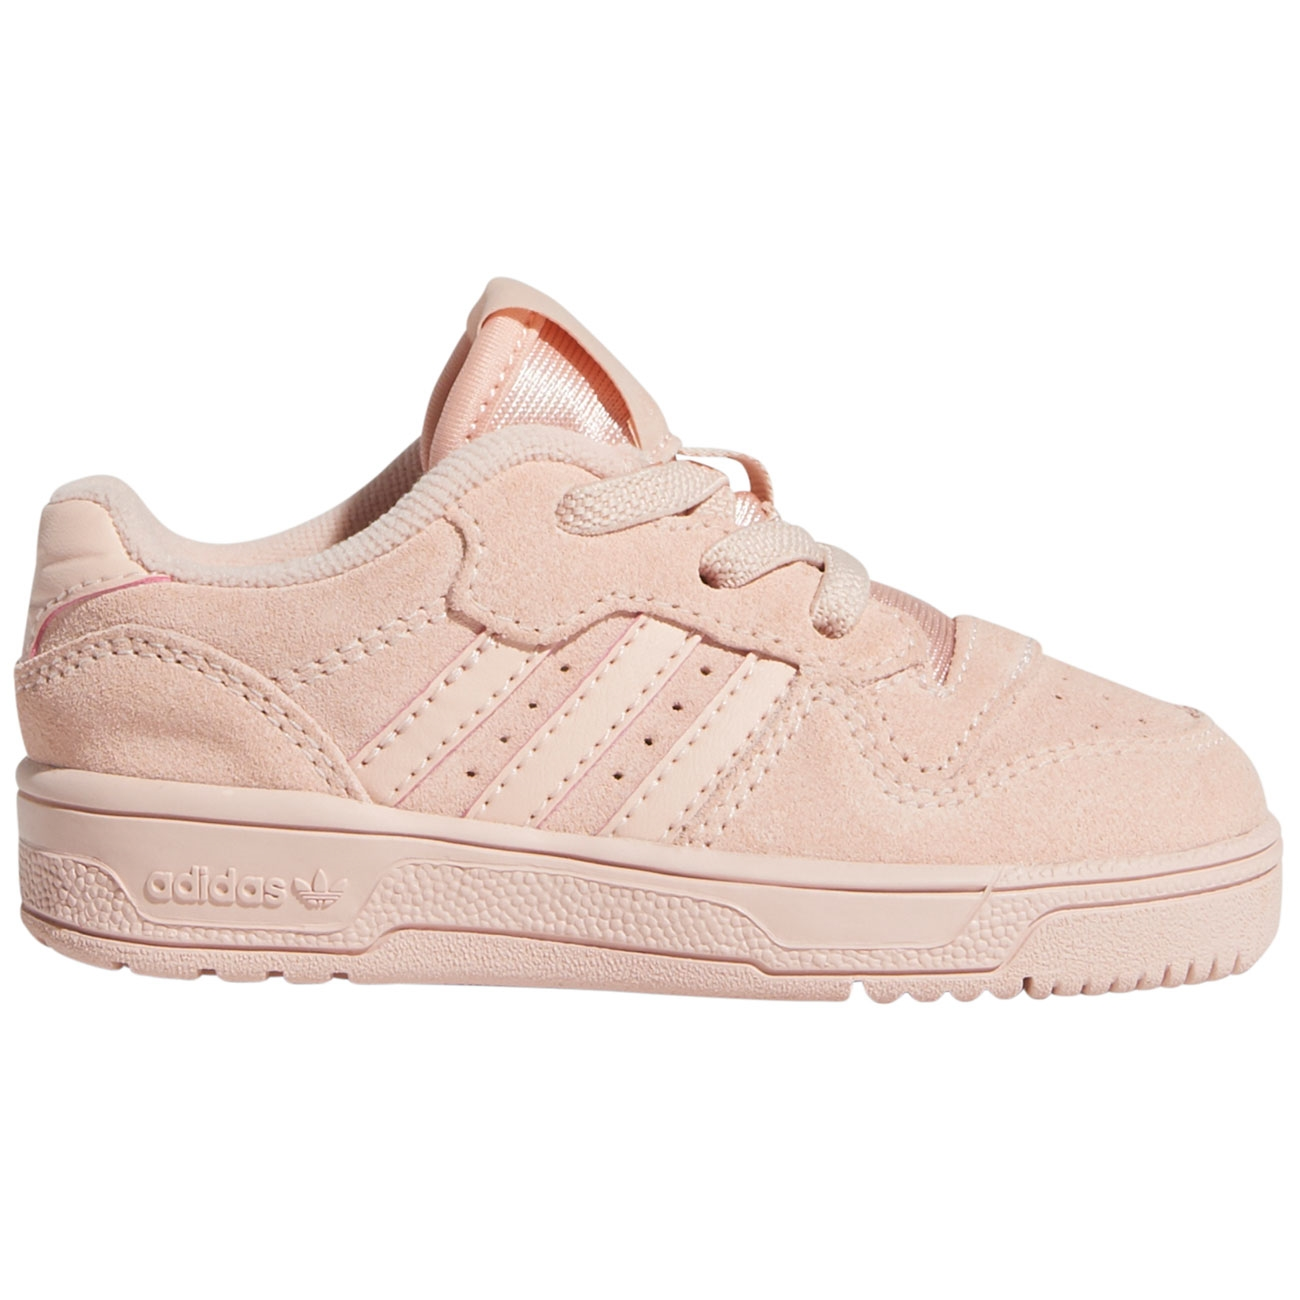 Rosa Low Adidas Adidas Sneakers Rivalry 7y6Ybgf